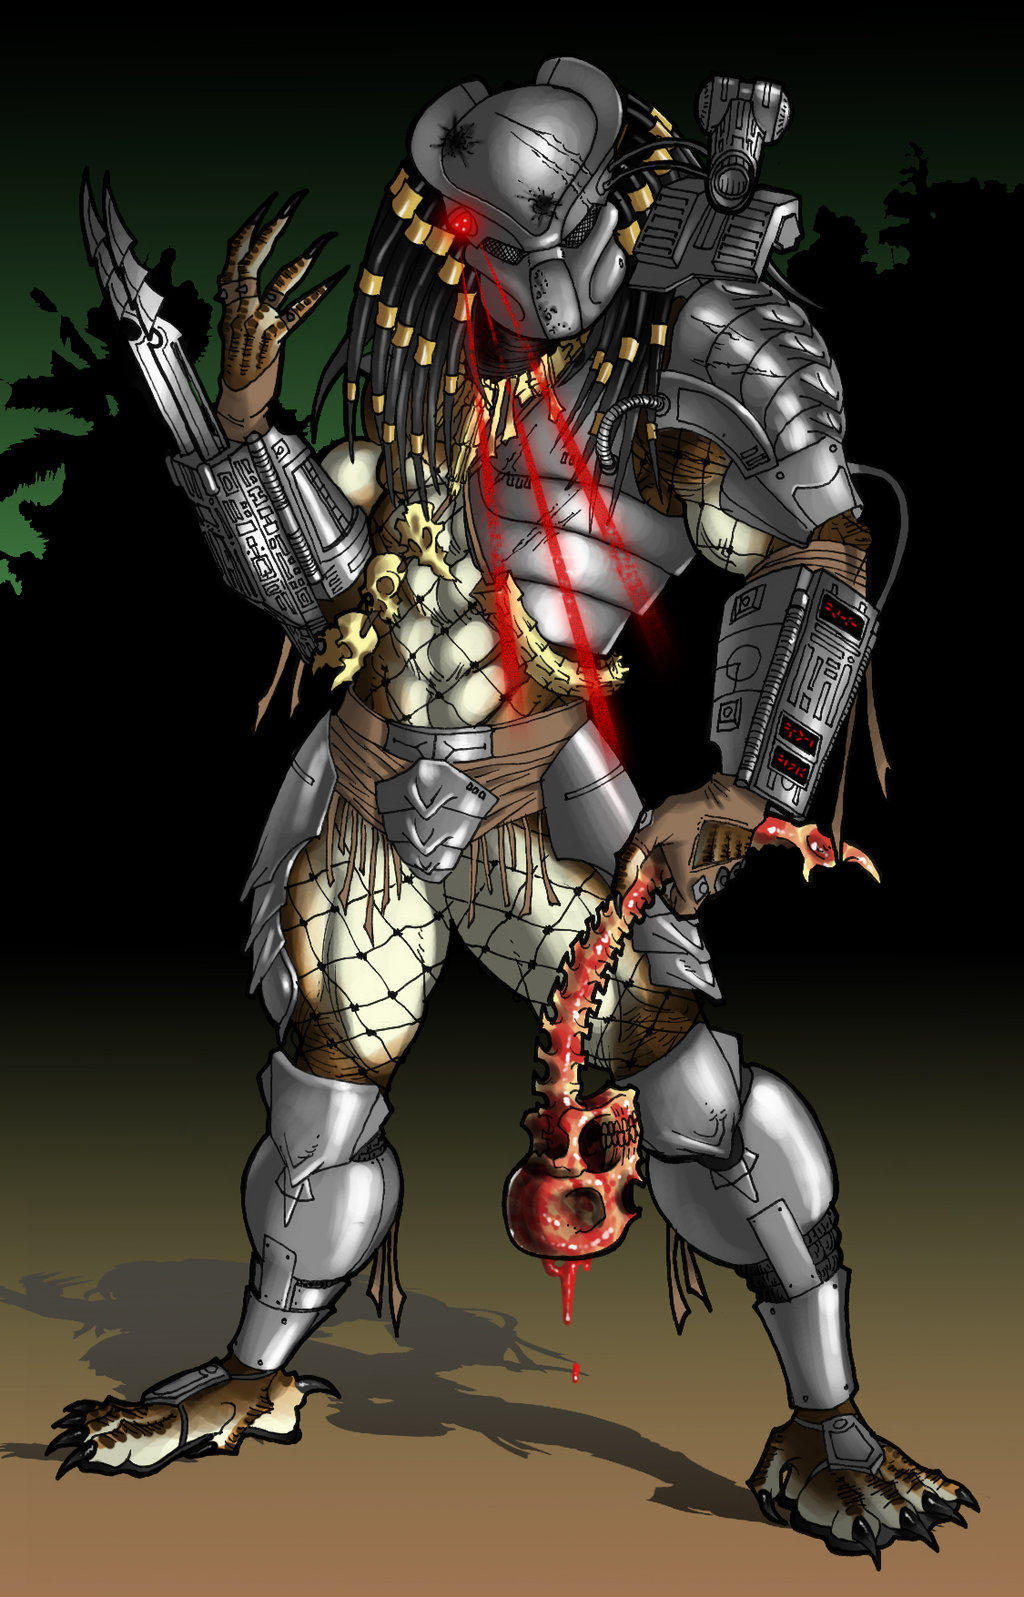 Drawn predator neca By Drawing Ronniesolano Painted Painted